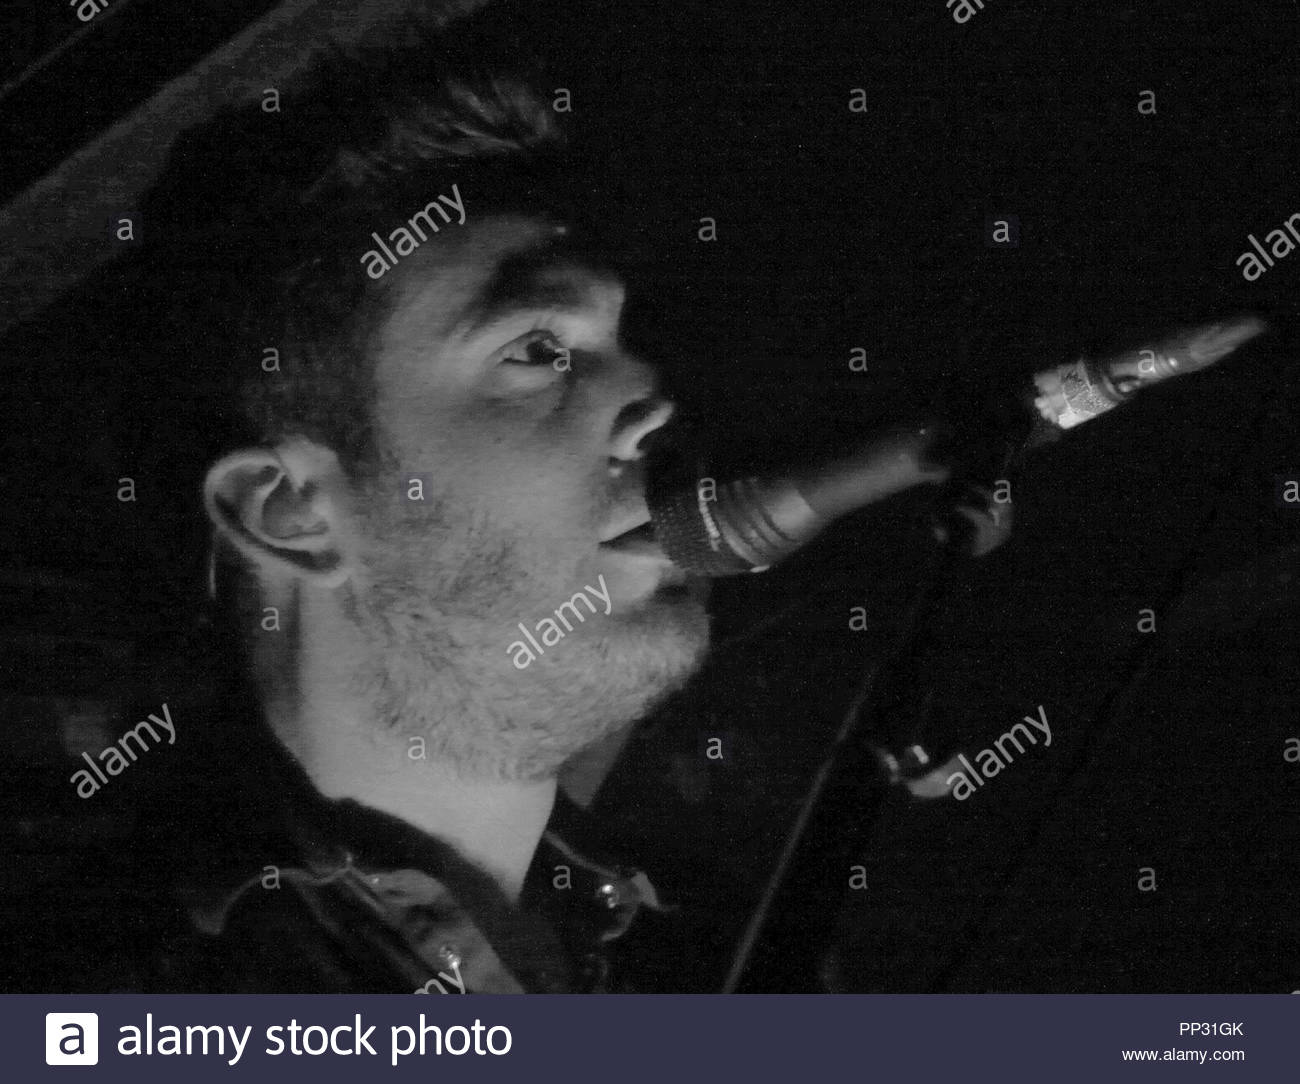 Delphic perform to a sold out audience at sankeys in manchester - Stock Image